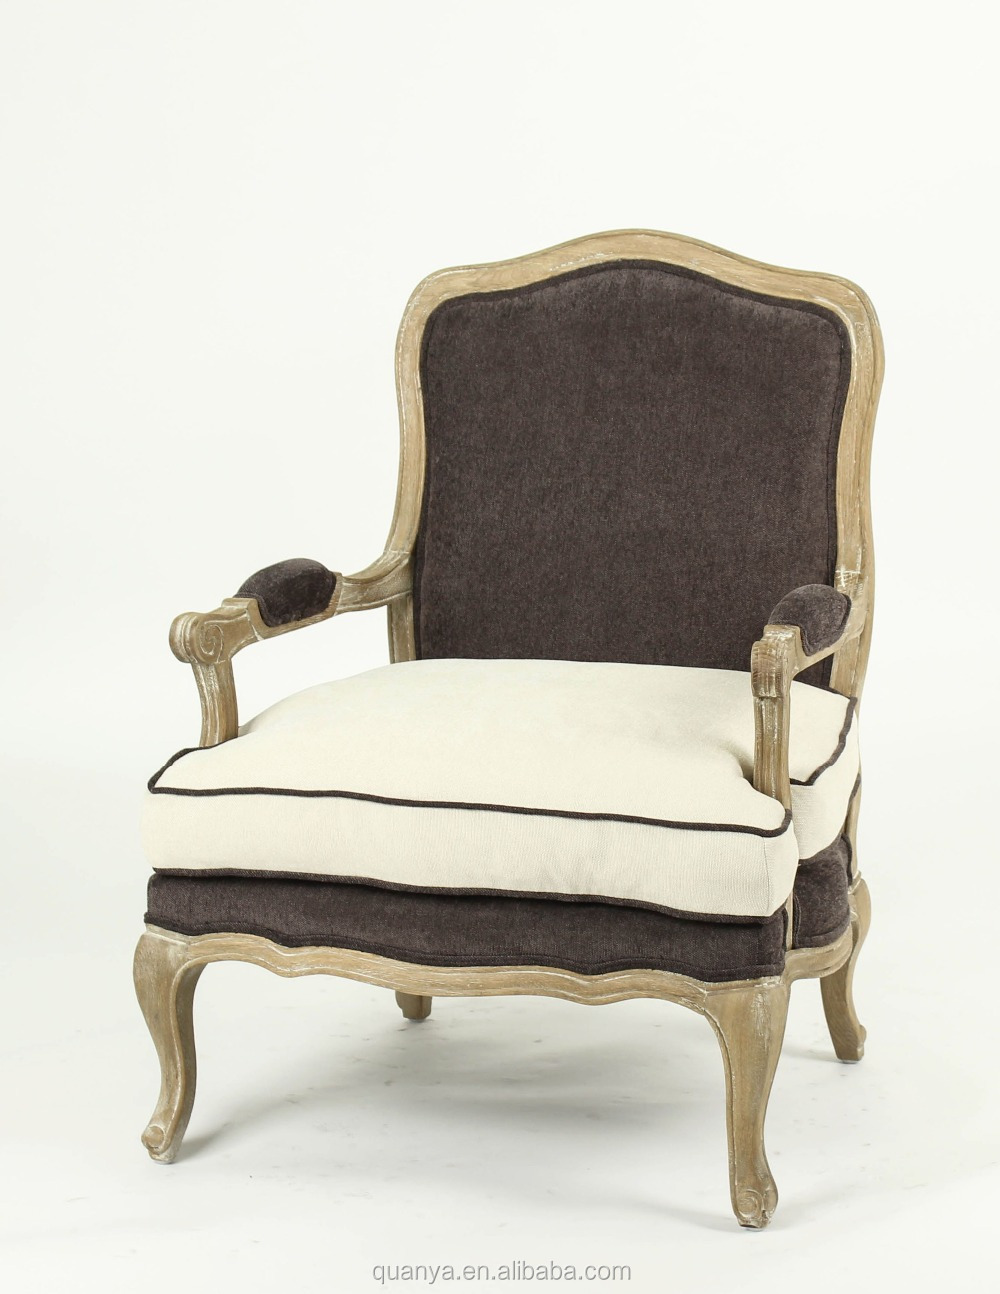 Fabric chair upholstered lounge chairs with birch frame for Living room upholstered chairs